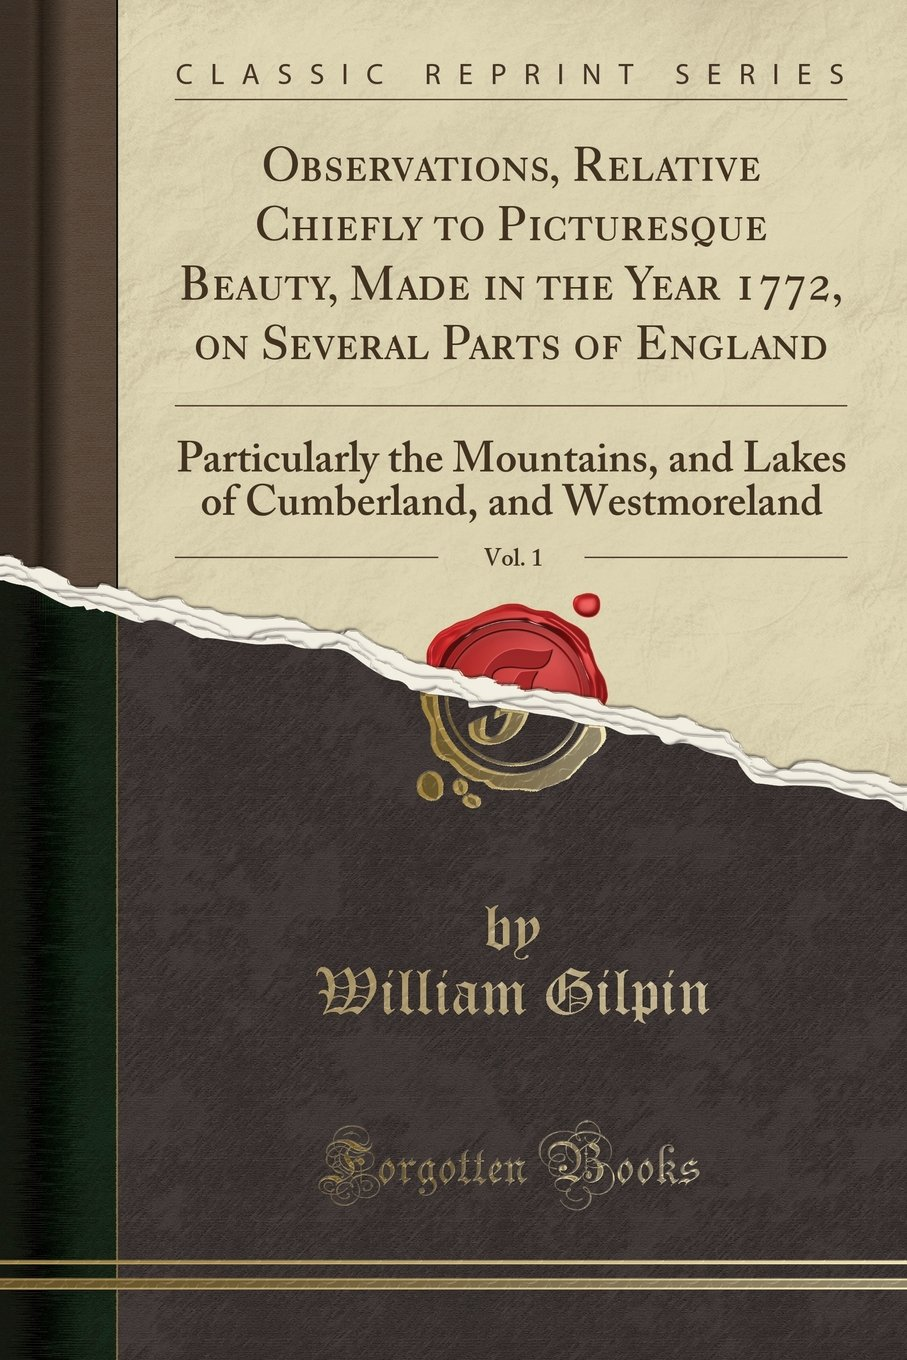 Download Observations, Relative Chiefly to Picturesque Beauty, Made in the Year 1772, on Several Parts of England, Vol. 1: Particularly the Mountains, and ... and Westmoreland (Classic Reprint) pdf